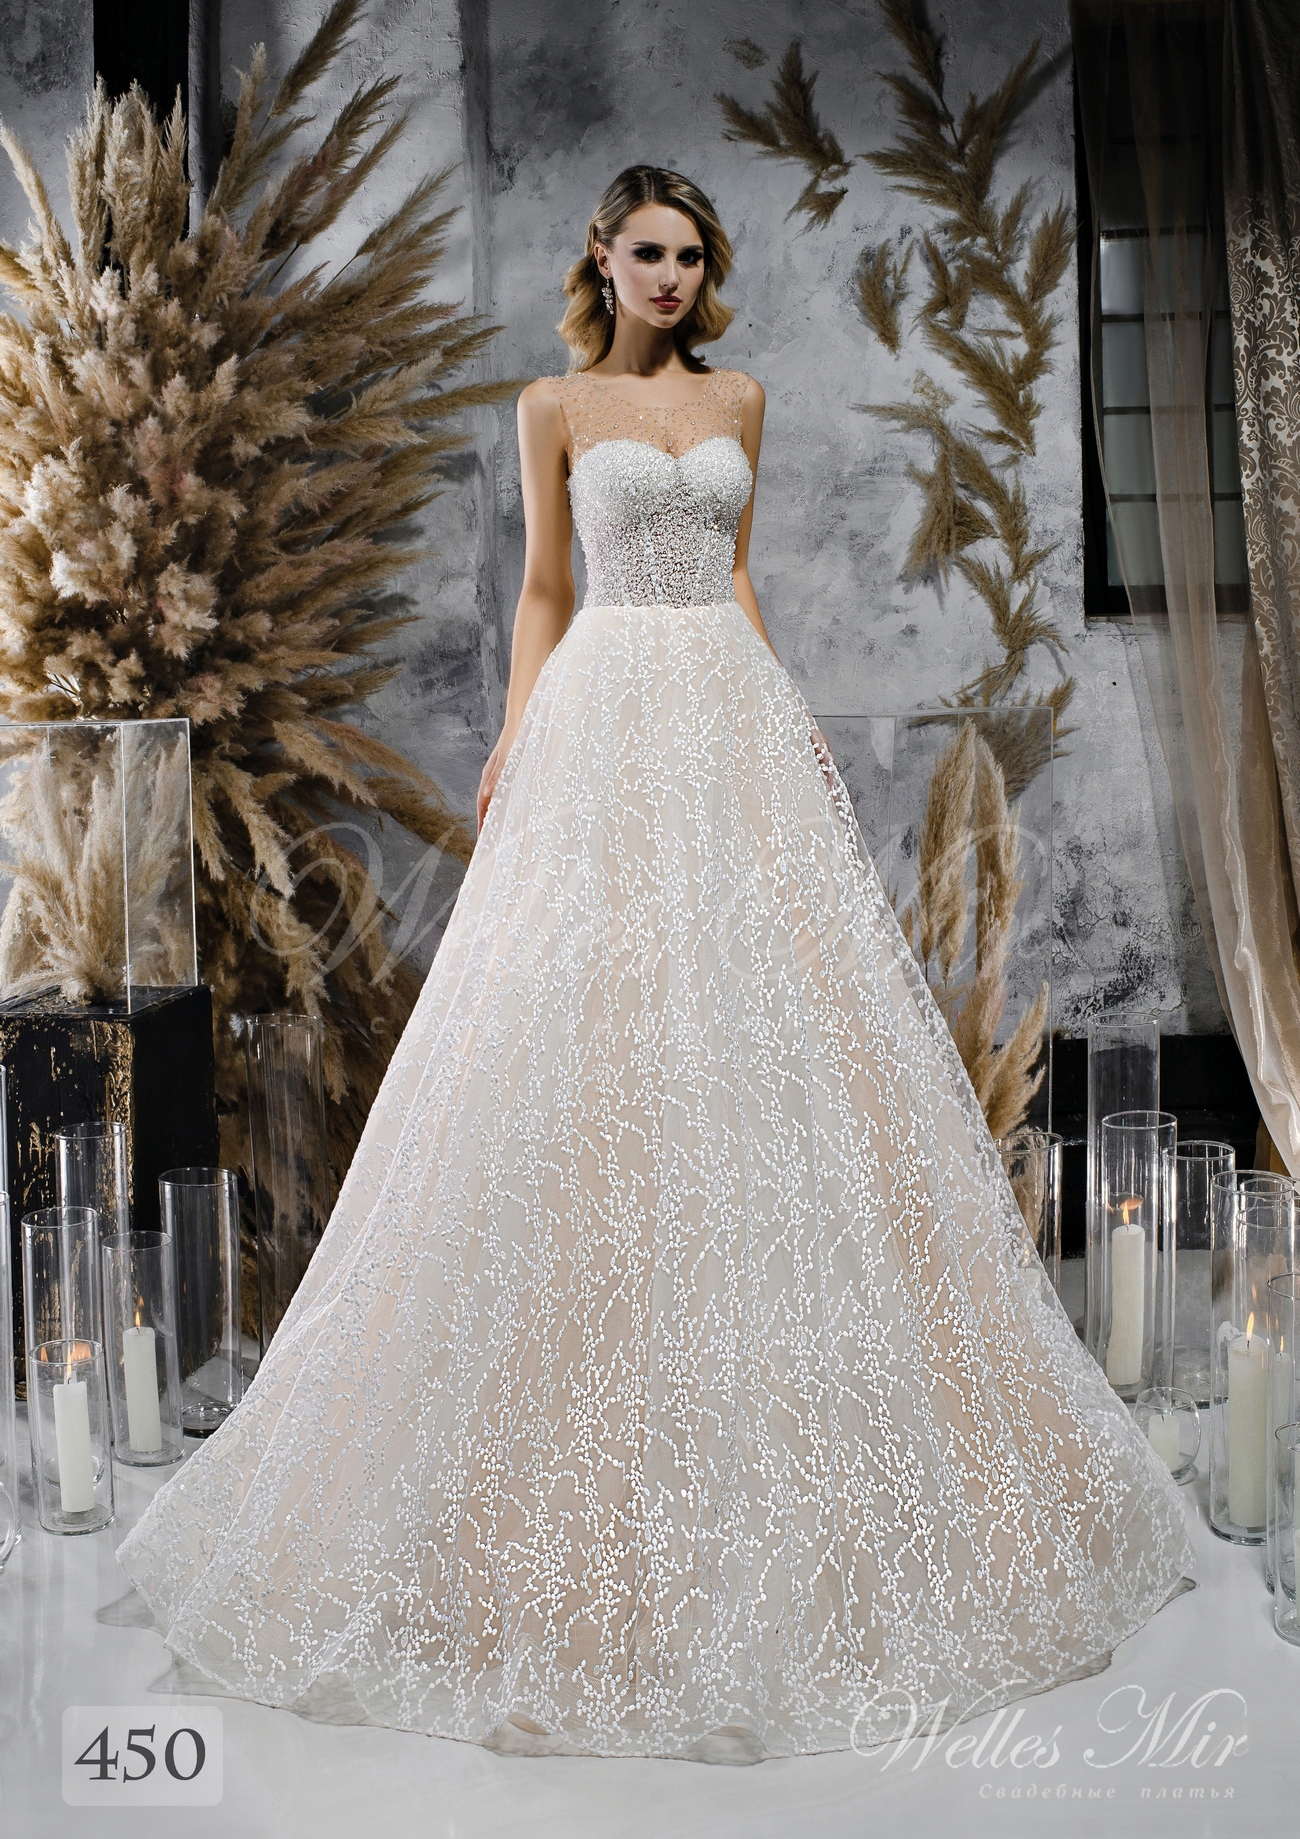 Wedding dresses 450